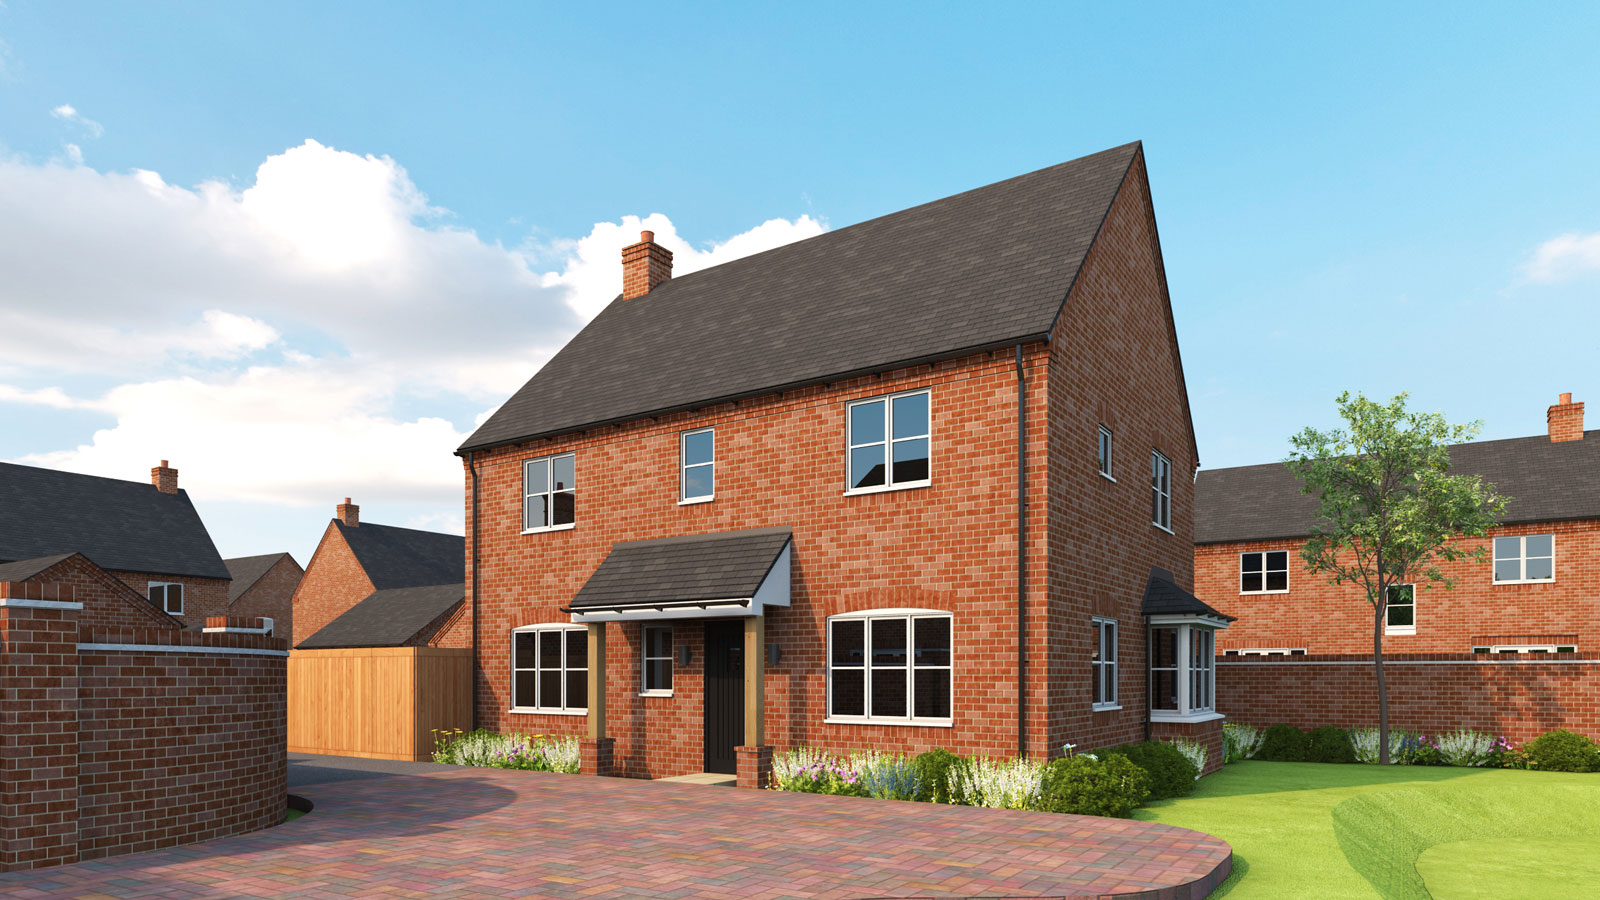 Gloucester II - A DISTINCTIVELY DESIGNED4-BEDROOM FAMILY HOME